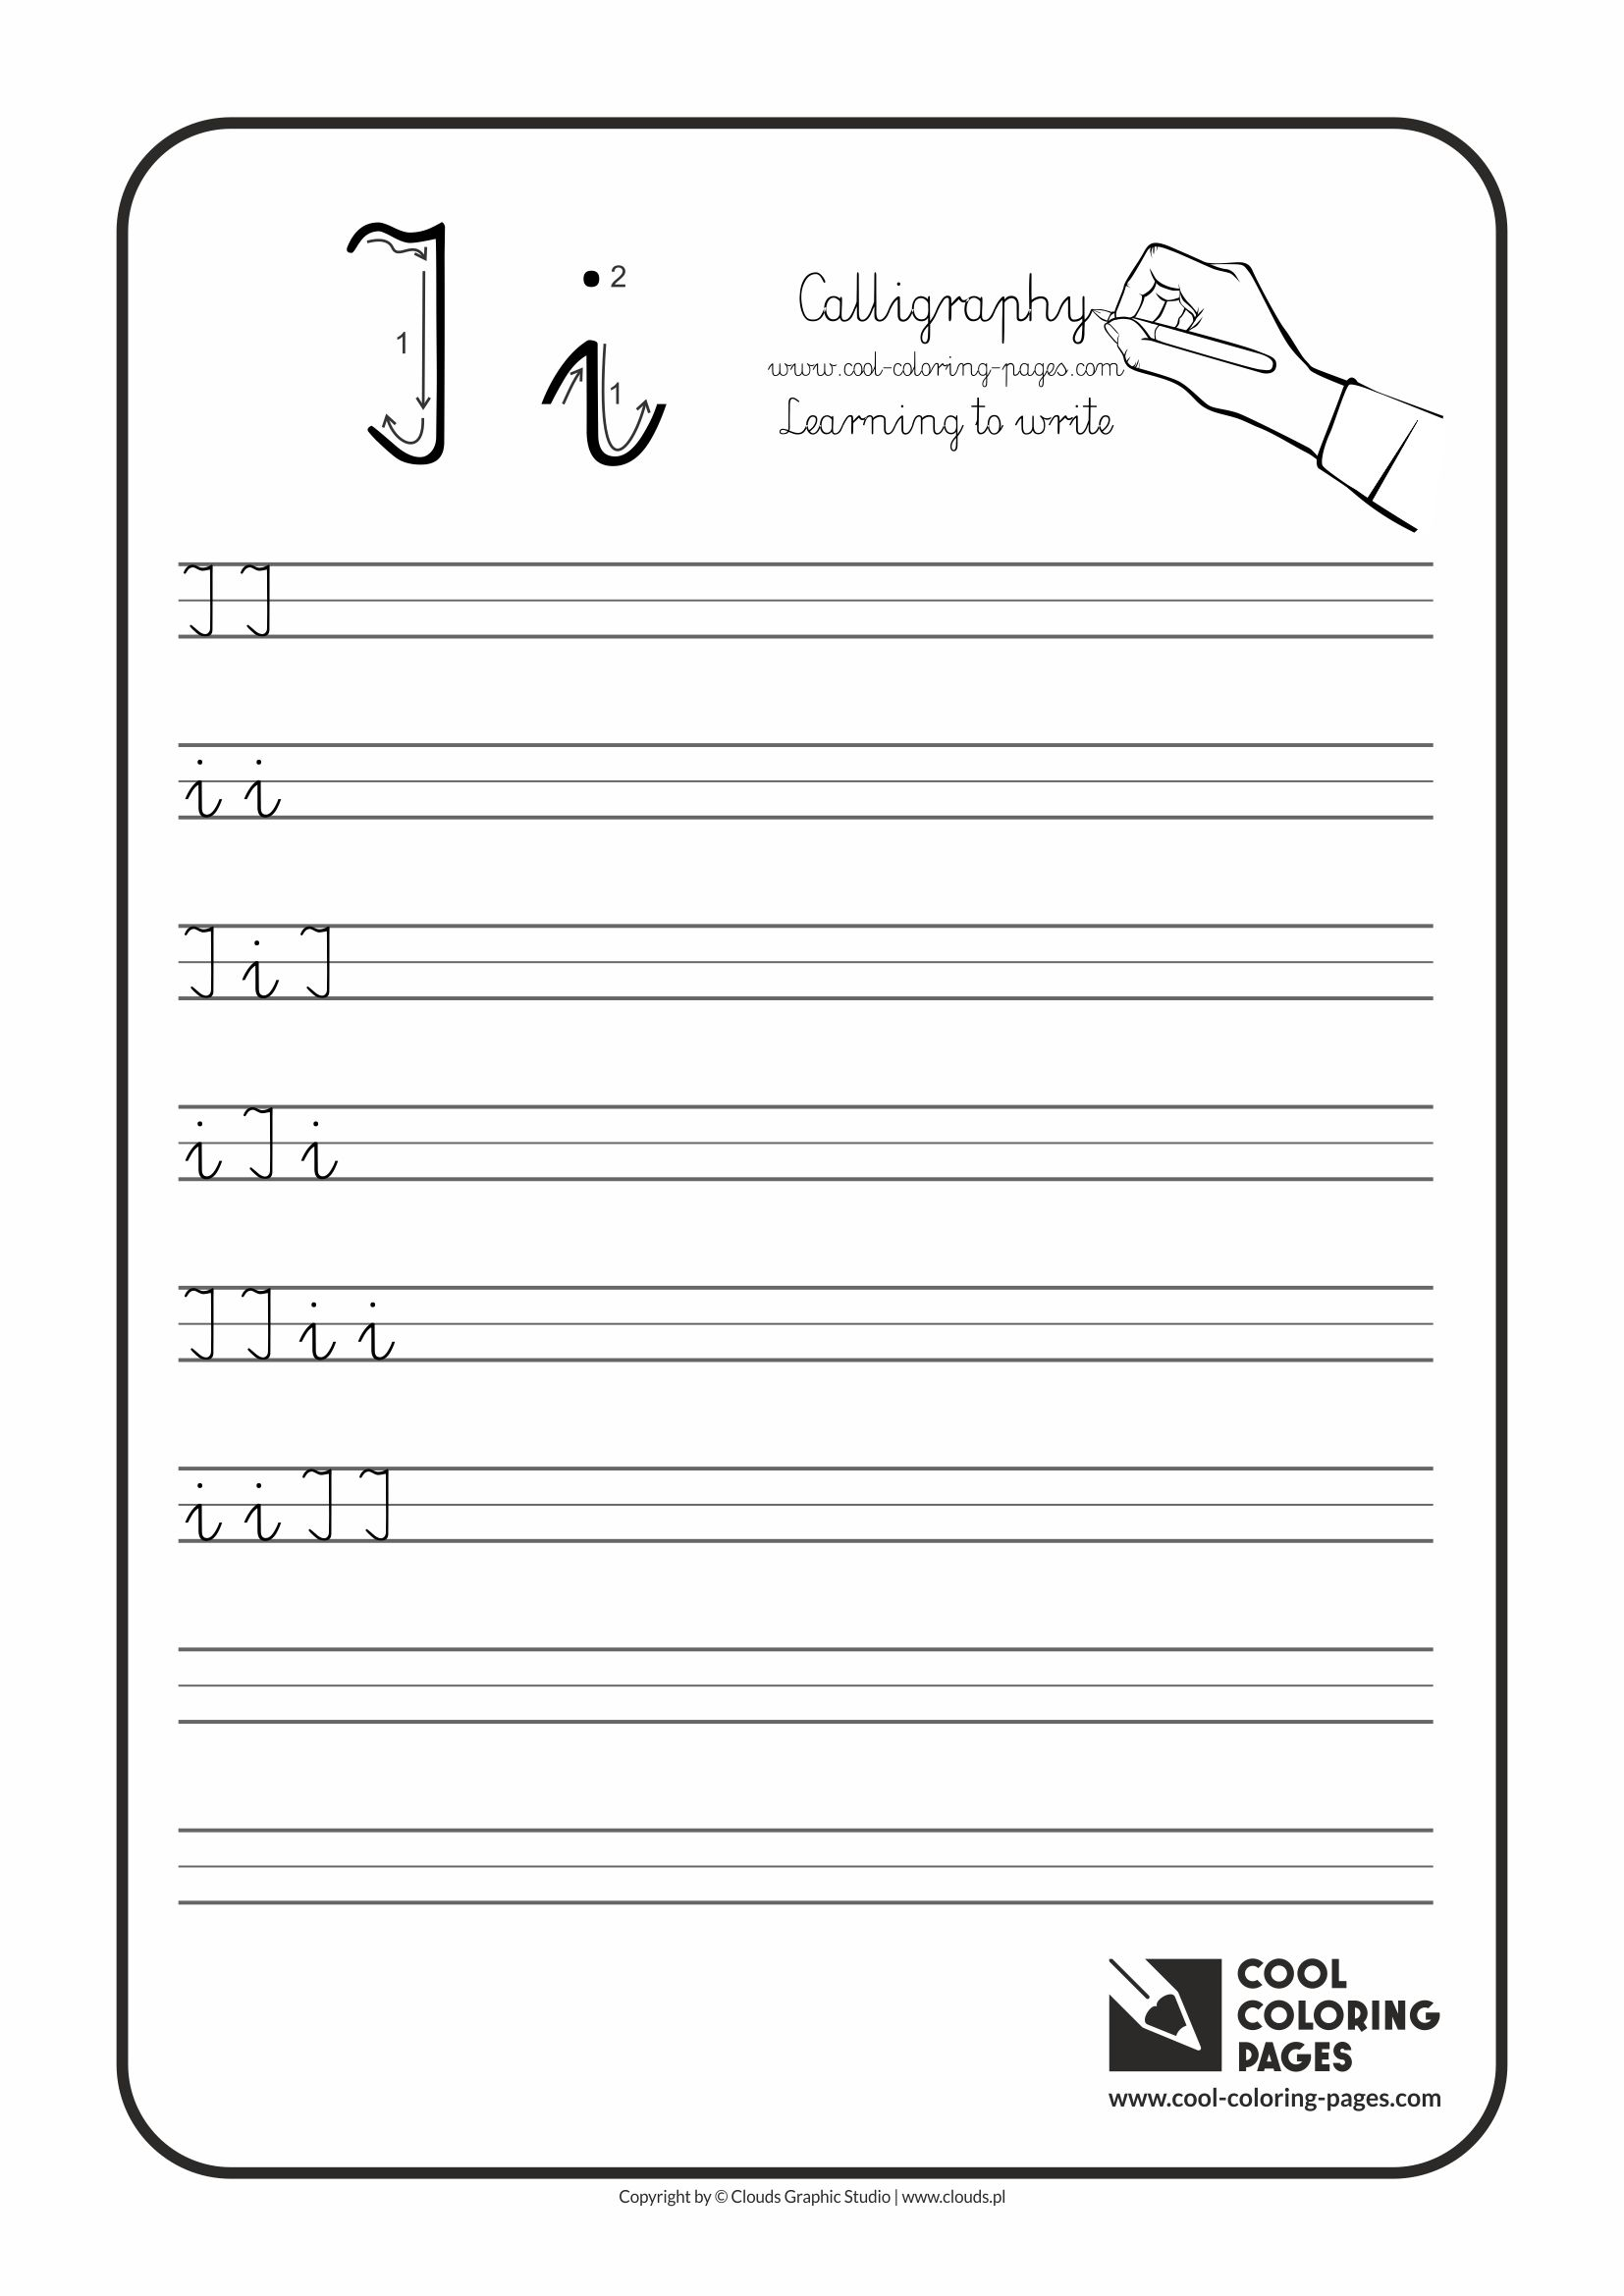 cool coloring pages calligraphy for kids letters handwriting cool coloring pages free. Black Bedroom Furniture Sets. Home Design Ideas